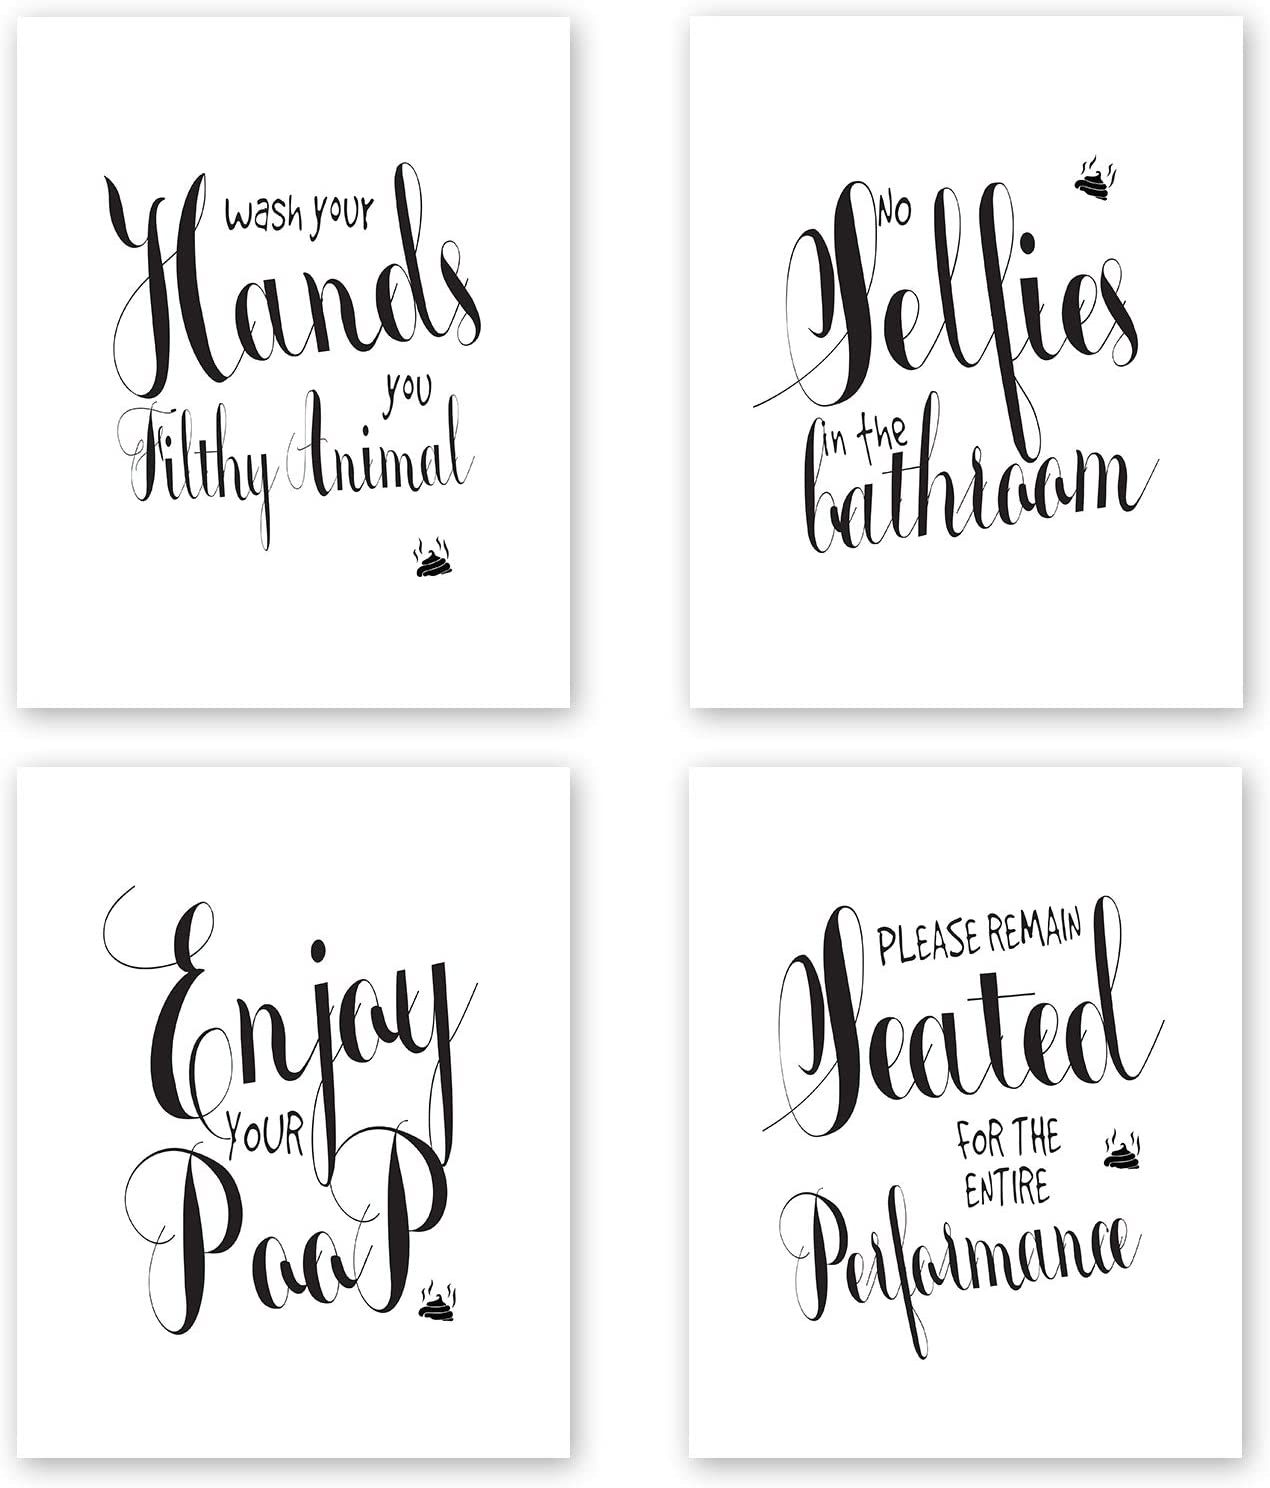 Nuah Prints Funny Bathroom Wall Decor Prints, Set of 4 Toilet Quotes and Sayings Art Signs, Unframed Bath Decor Prints, 8x10 inches (Set #1)